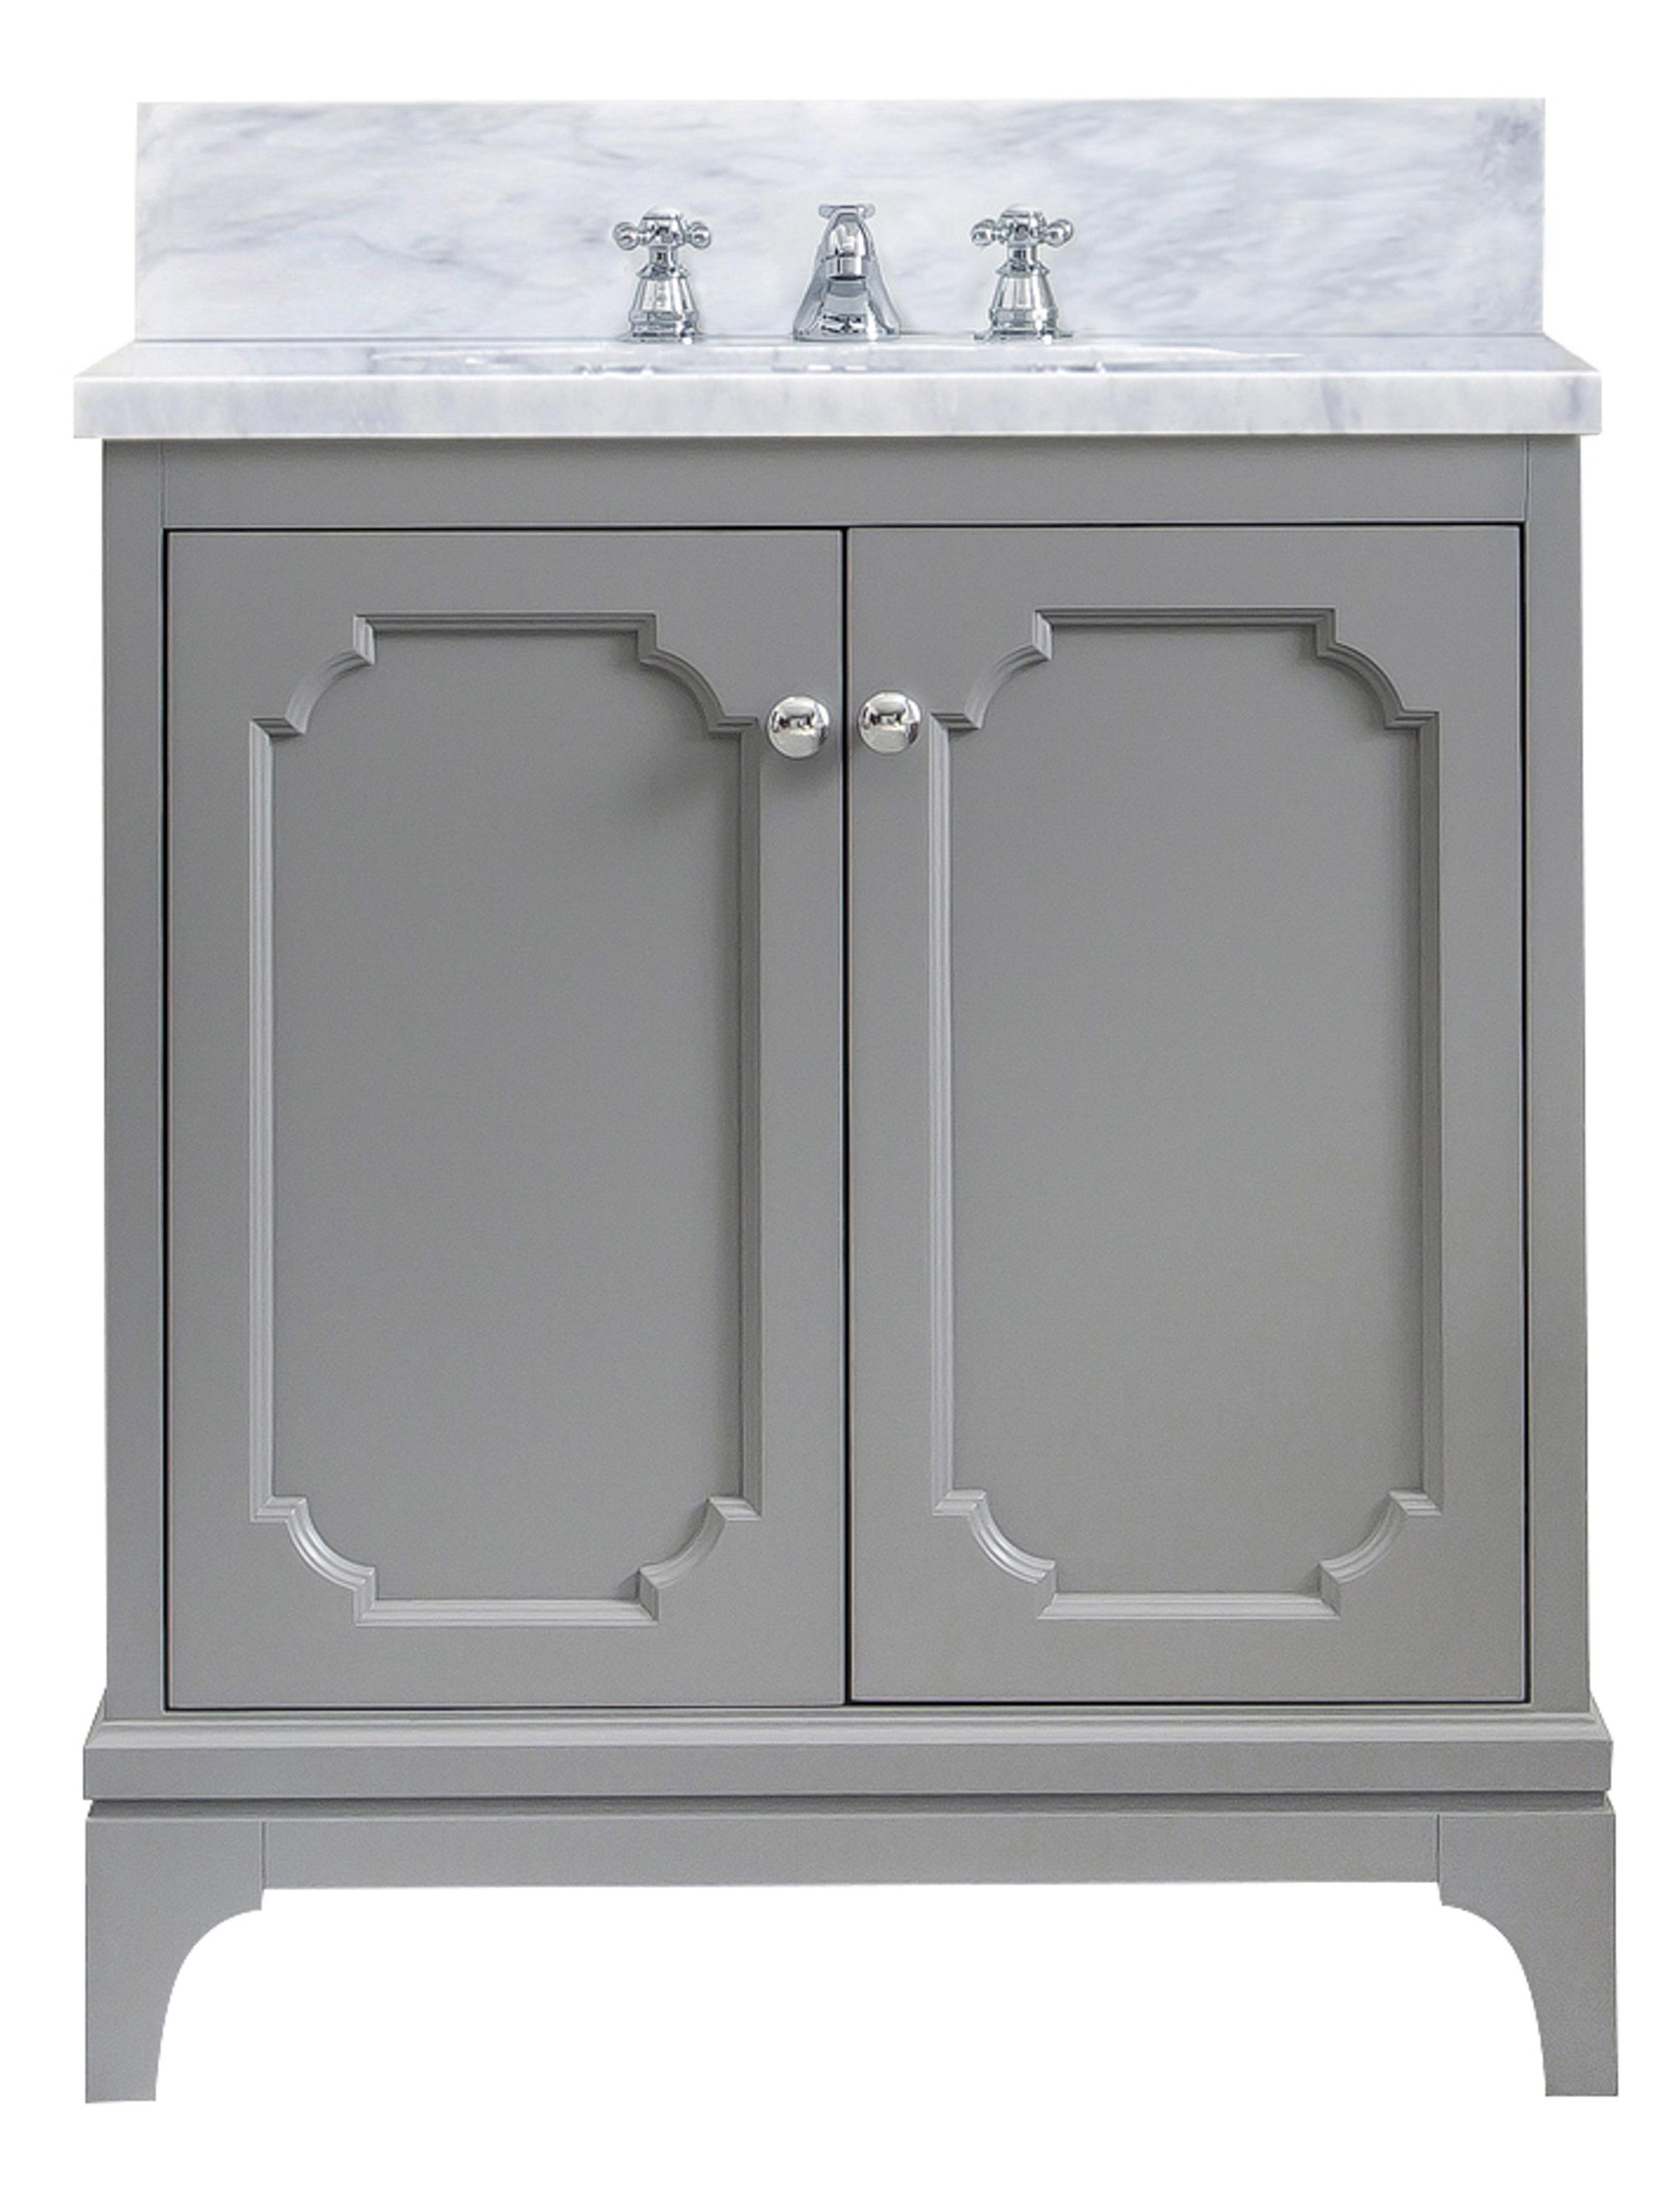 """30"""" Single Sink Carrara White Marble Countertop Vanity in Cashmere Grey with Mirror and Faucet Options"""